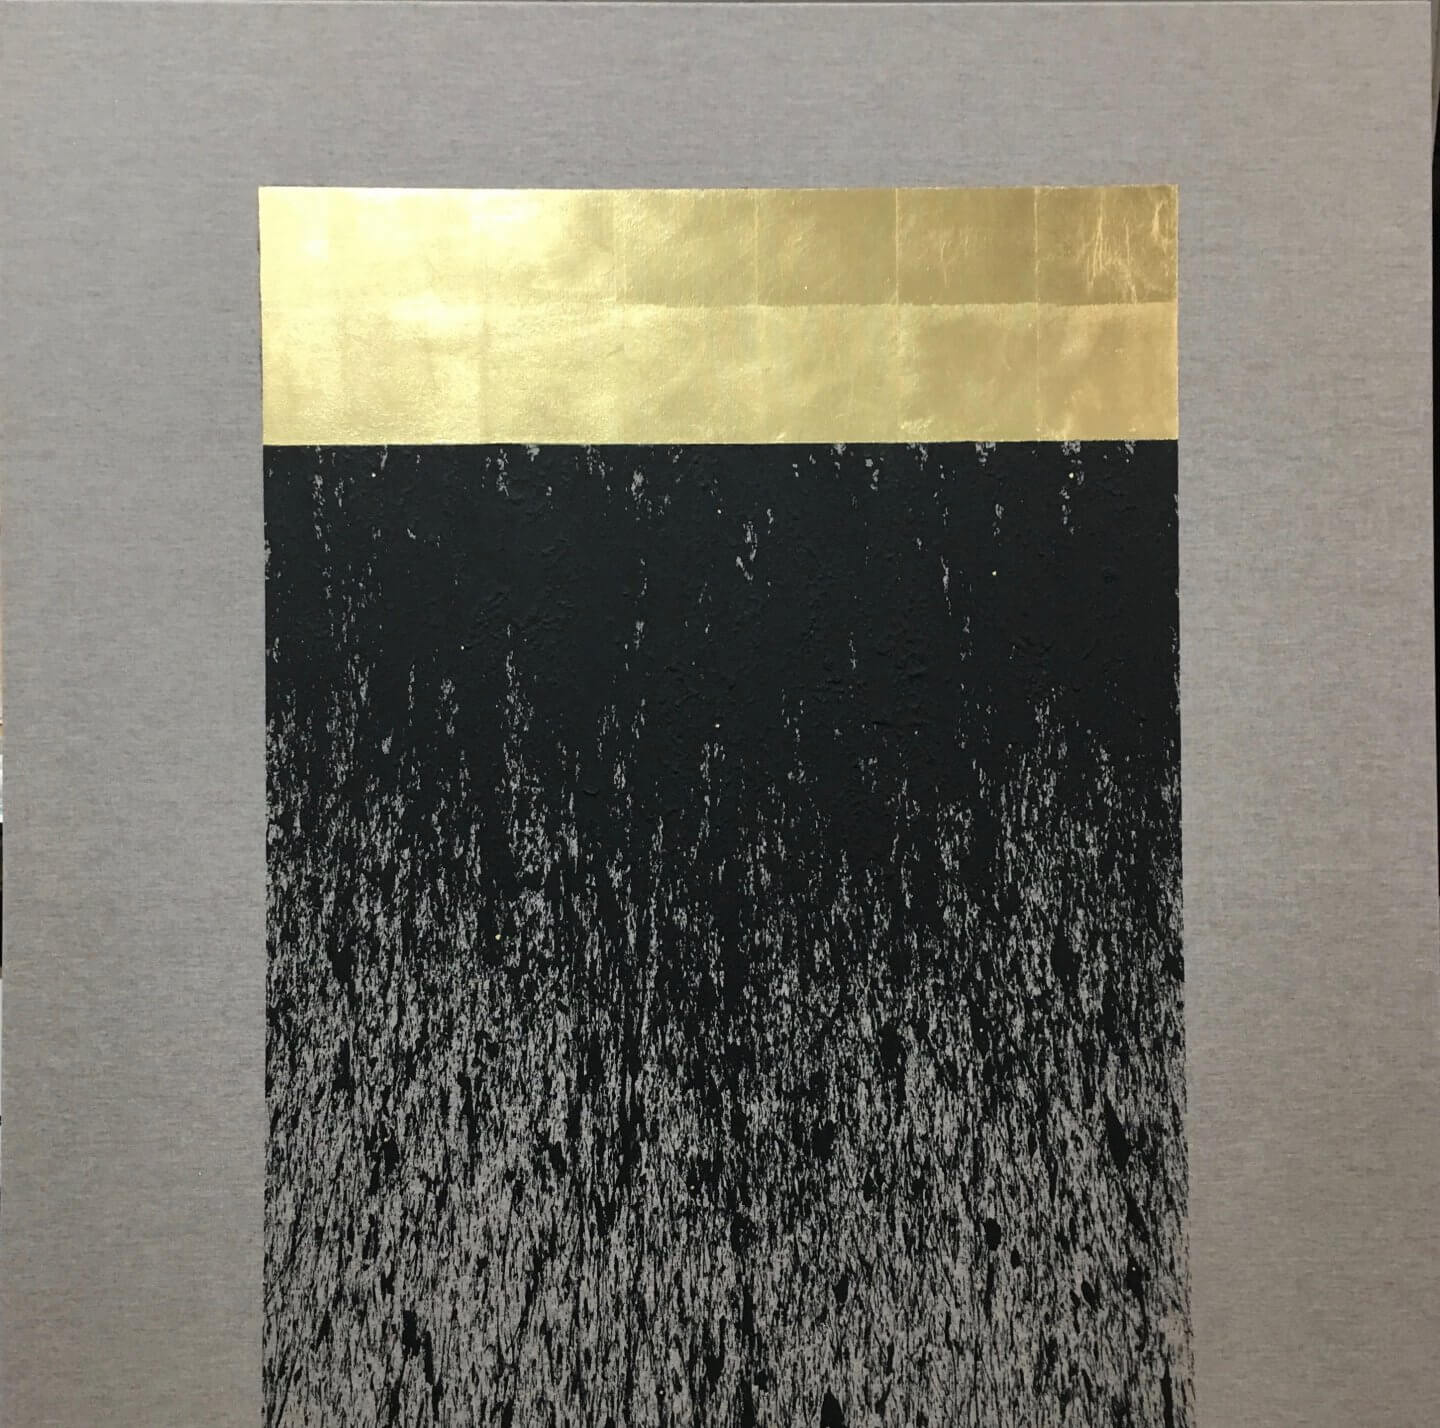 Galerie Benjamin Eck München Black lava pigment and gold leaf on linen